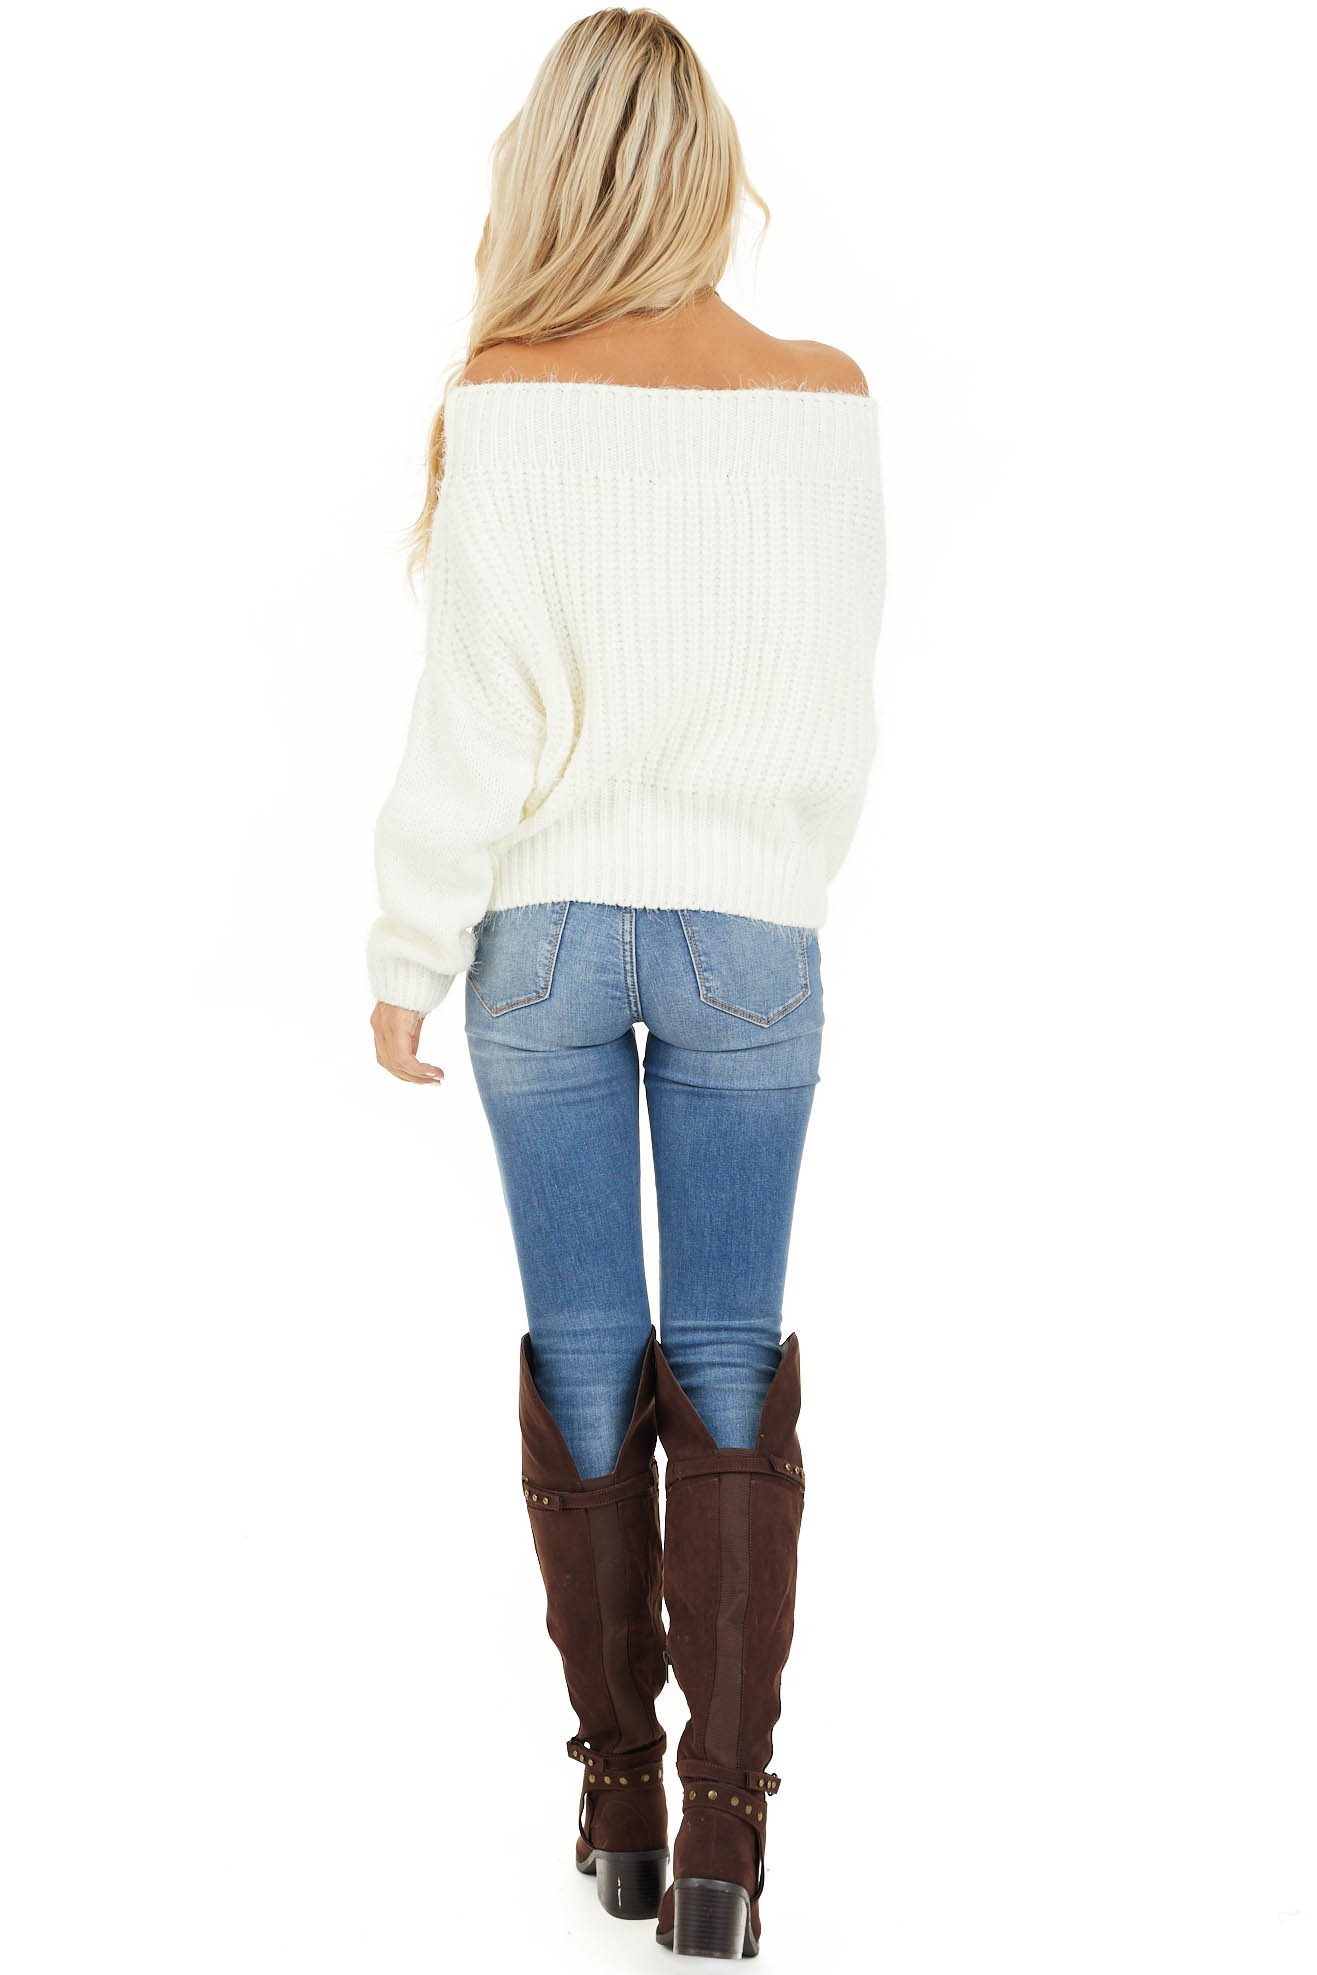 Ivory Off Shoulder Long Sleeve Knit Sweater Top back full body